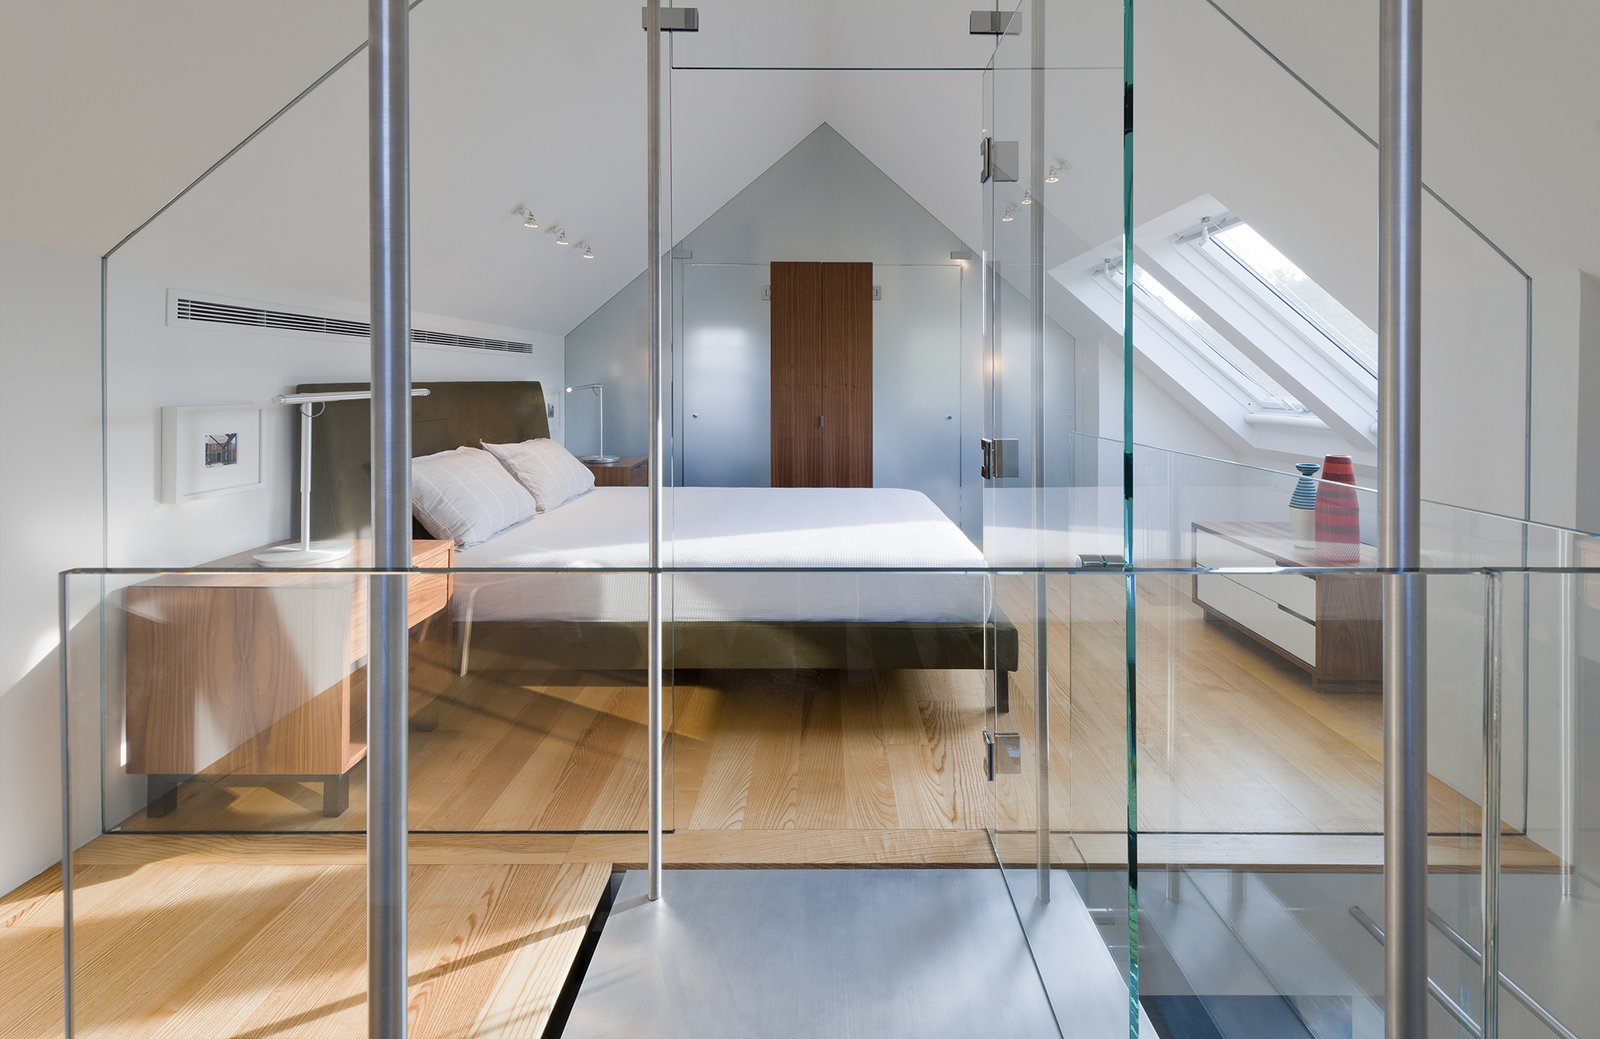 """This custom glass structure by Ilex Construction allows for an abundance of light during the day. At night, Lightolier fixtures on the ceiling illuminate the Ella bed. Sherwin-Williams """"Pure White"""" was painted on all interior walls.  Bedrooms by Dwell from A Traditional Facade Hides A Light-Filled Modern Delaware Renovation"""